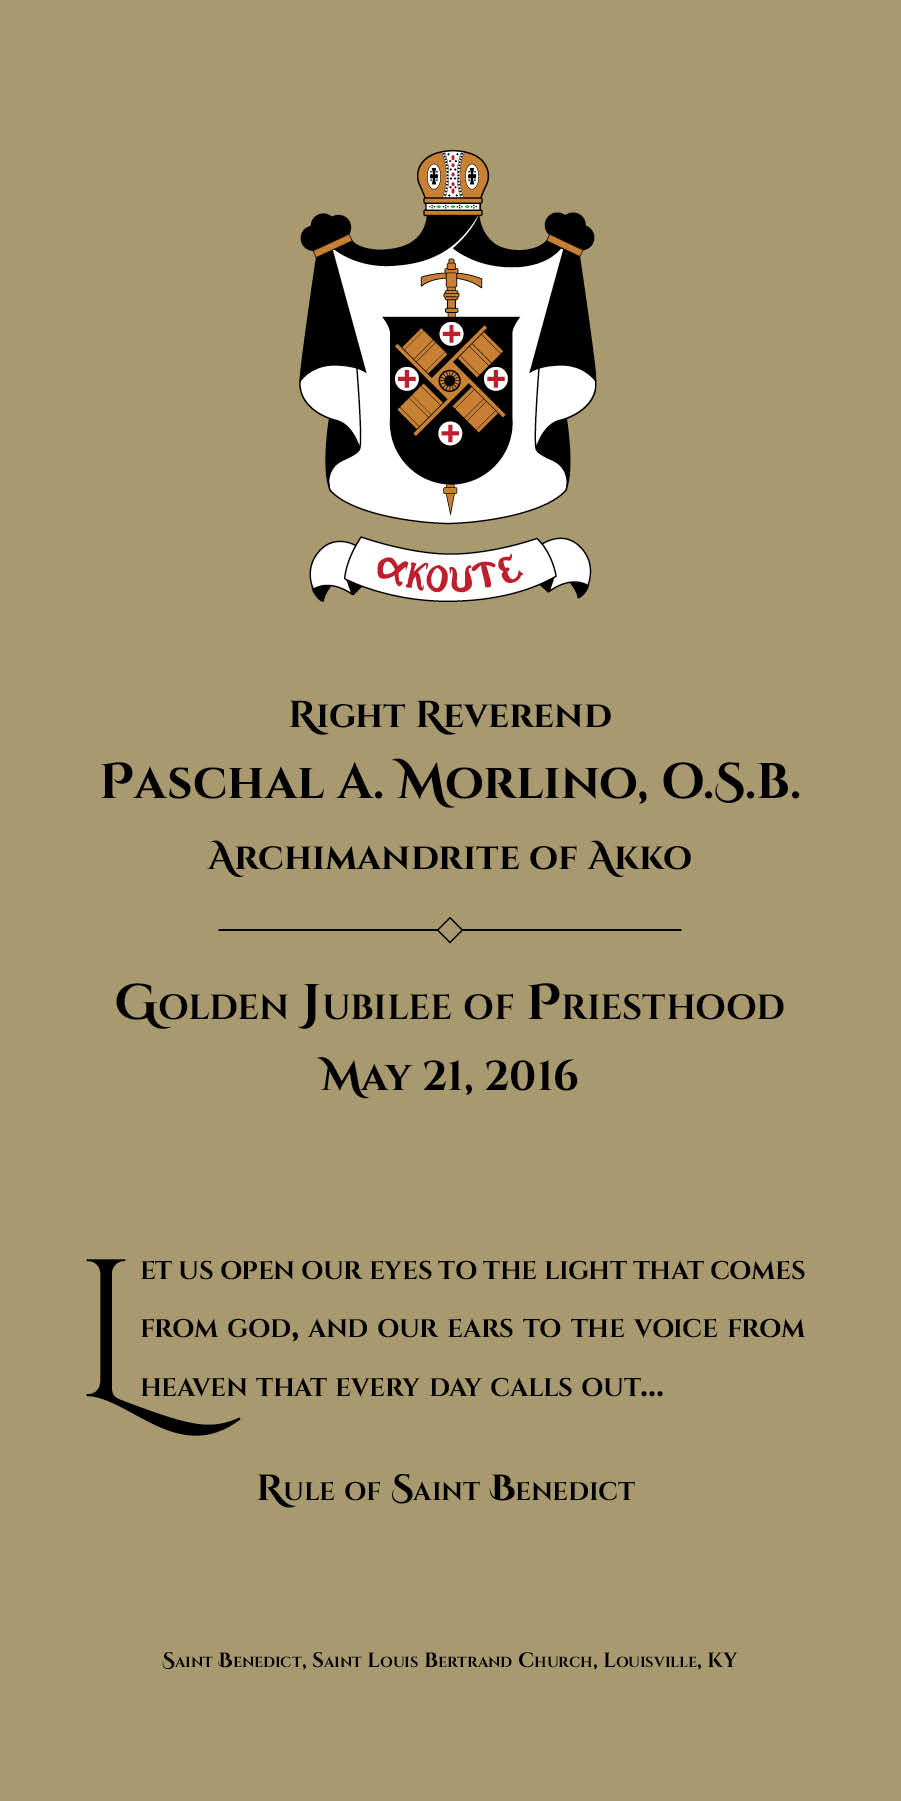 Paschal_Morlino_Golden_Jubilee_Holy_Card_20152.jpg